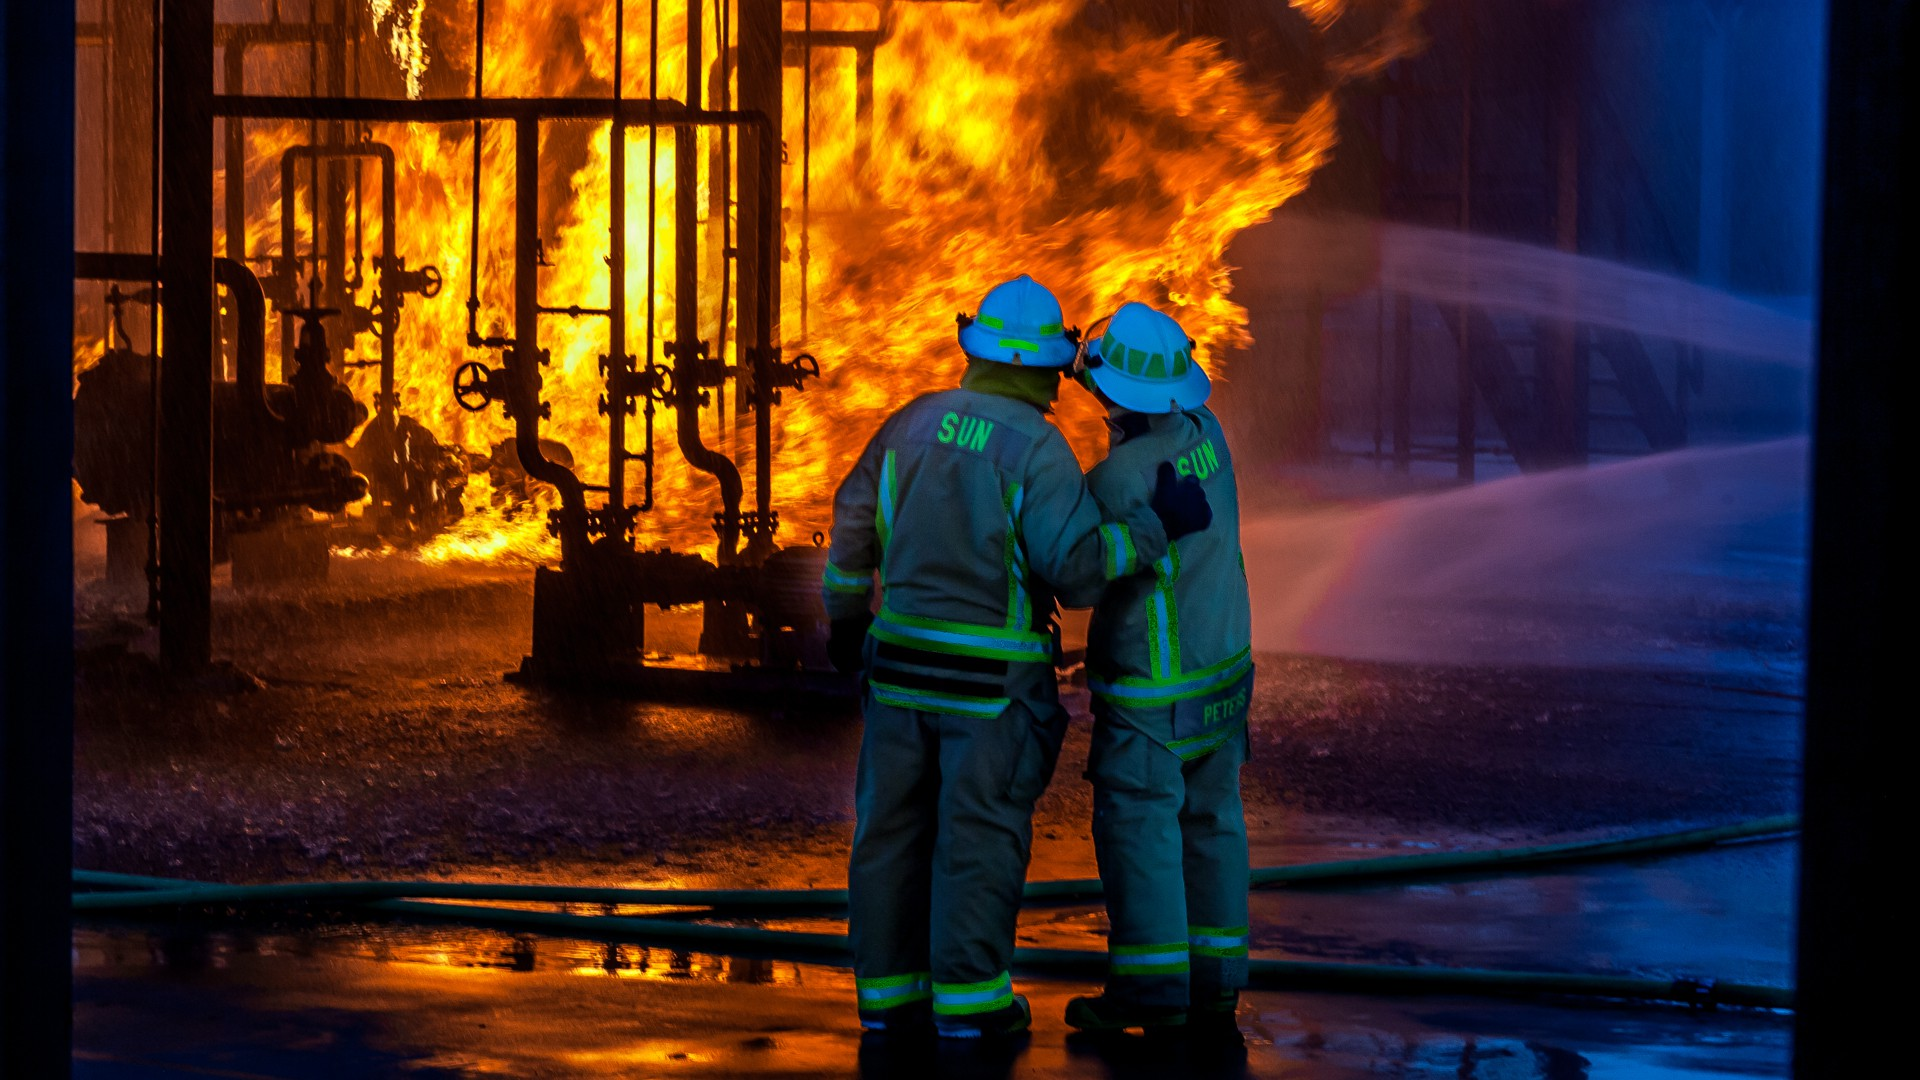 Two fire fighters watching an industrial fire